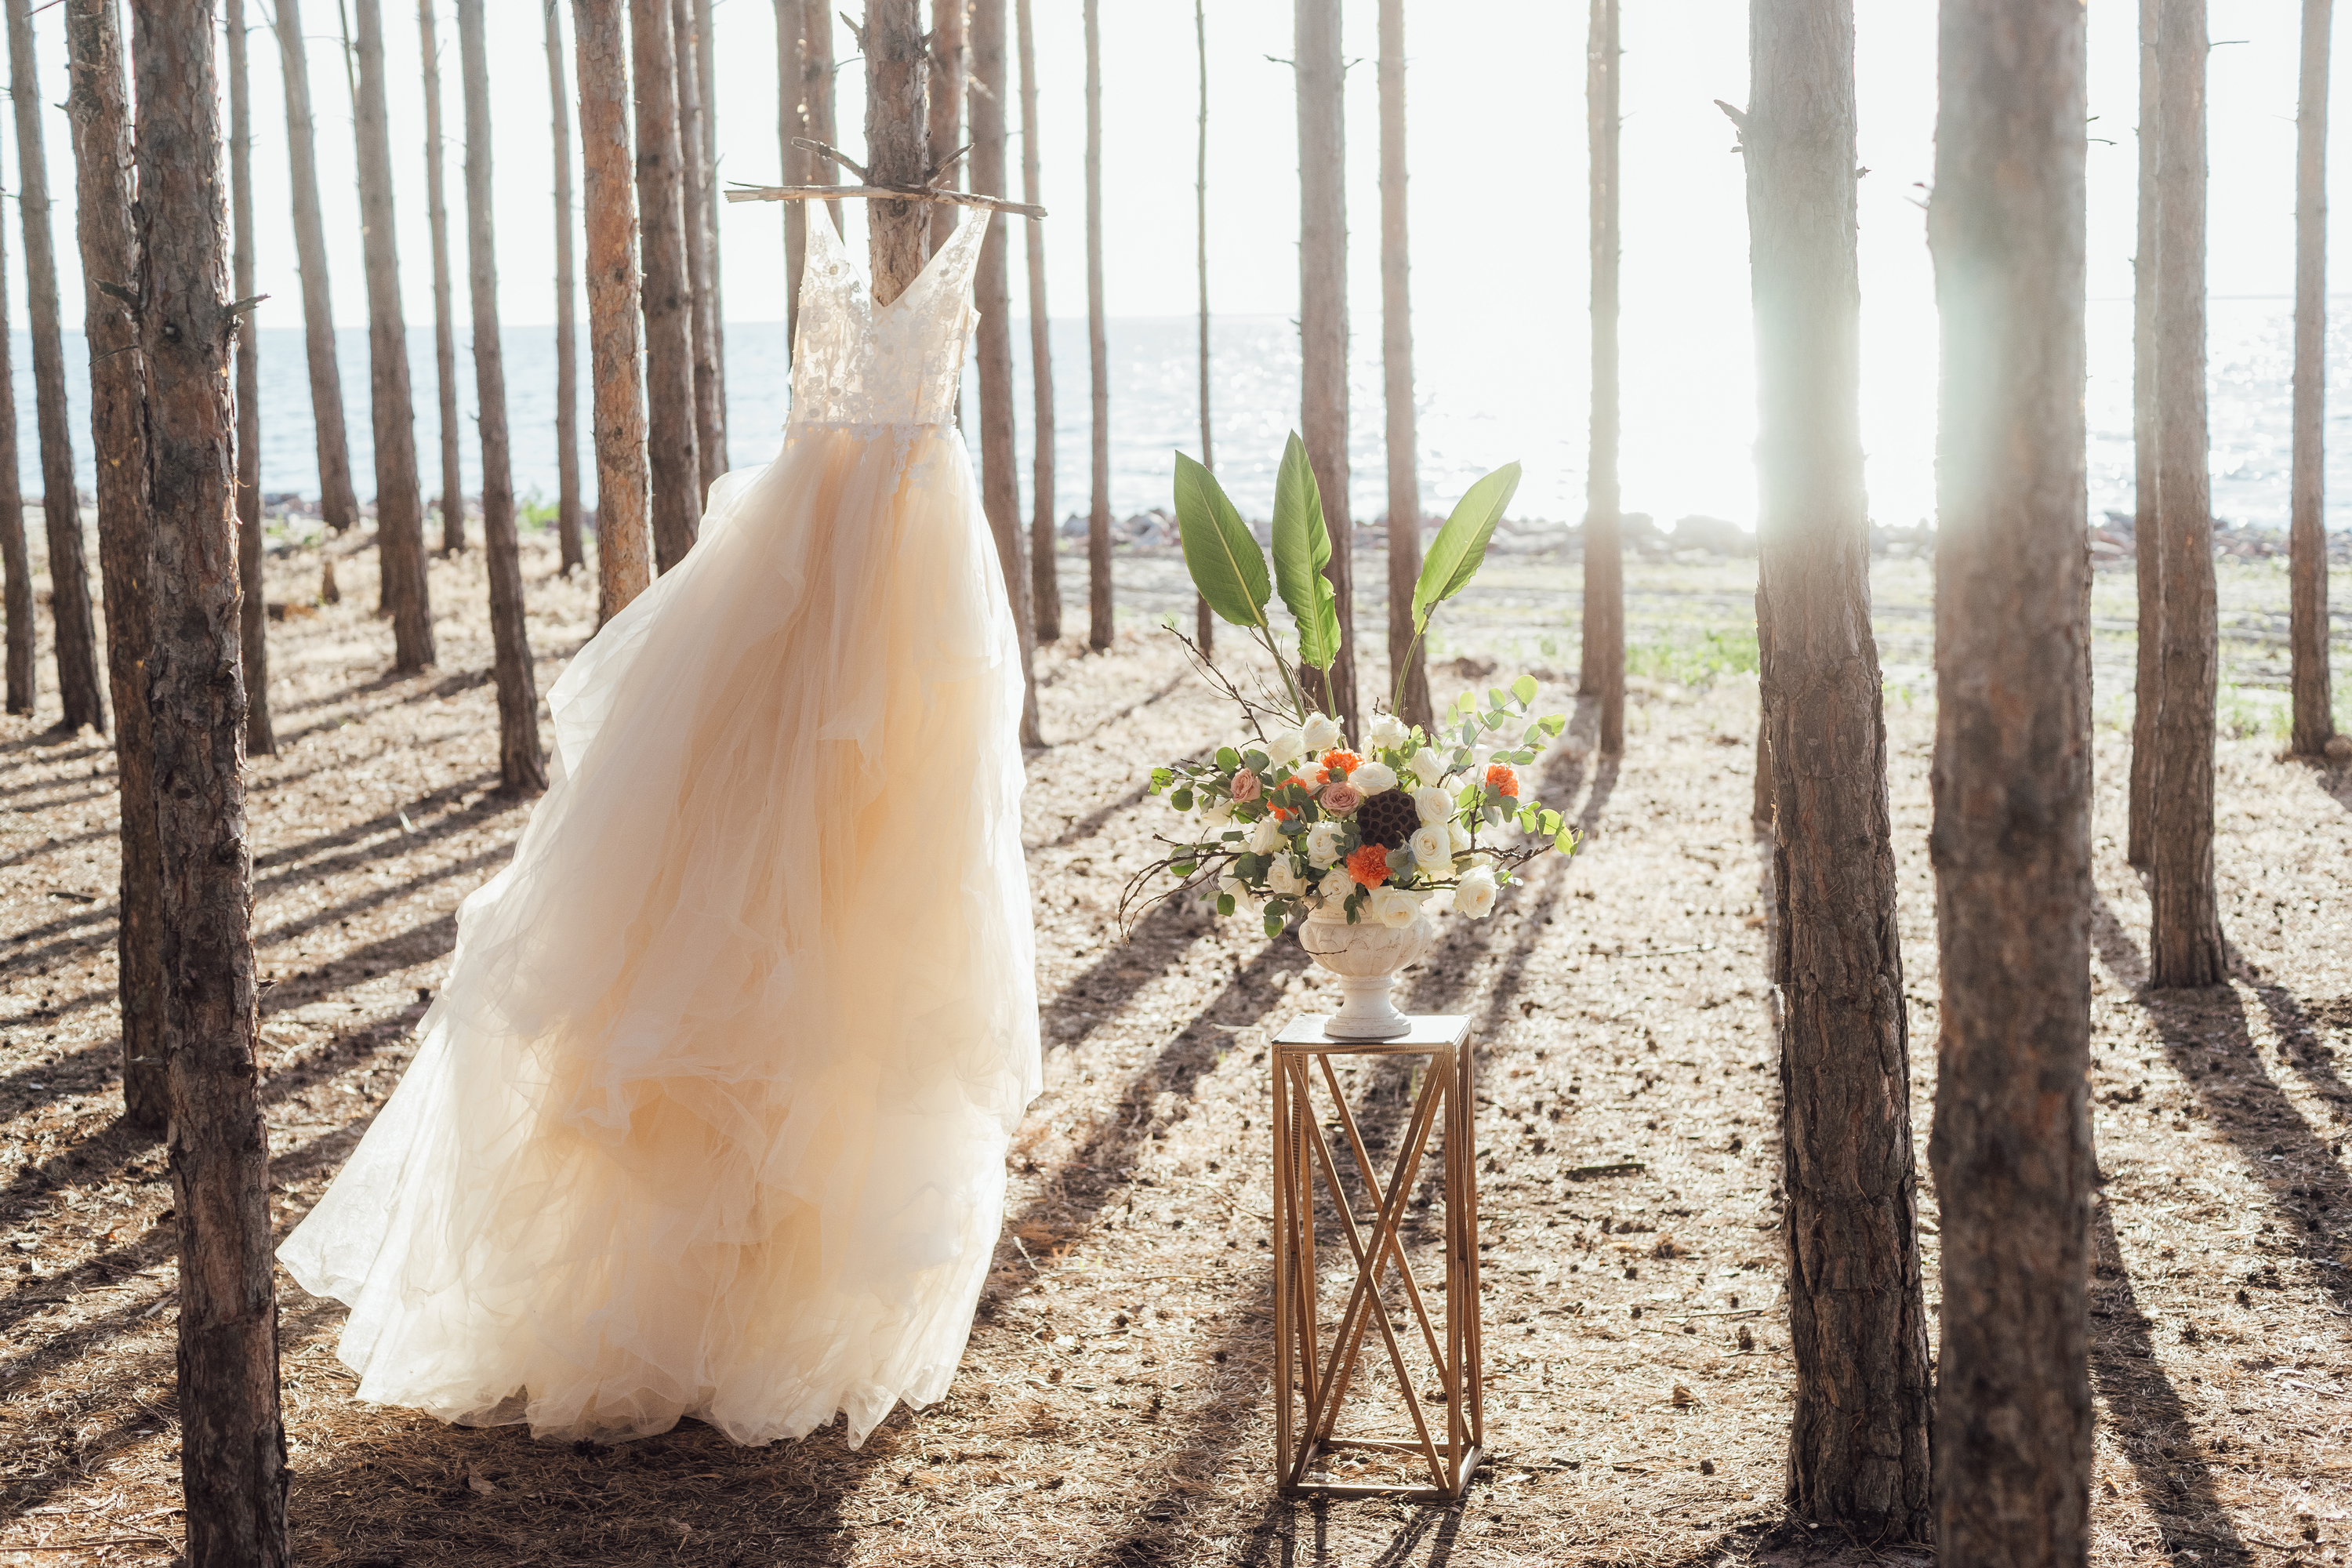 If you're planning a Spring wedding, make sure you look at Spring wedding dresses! Airy and flowy dresses always complement Spring time with their effortlessness.